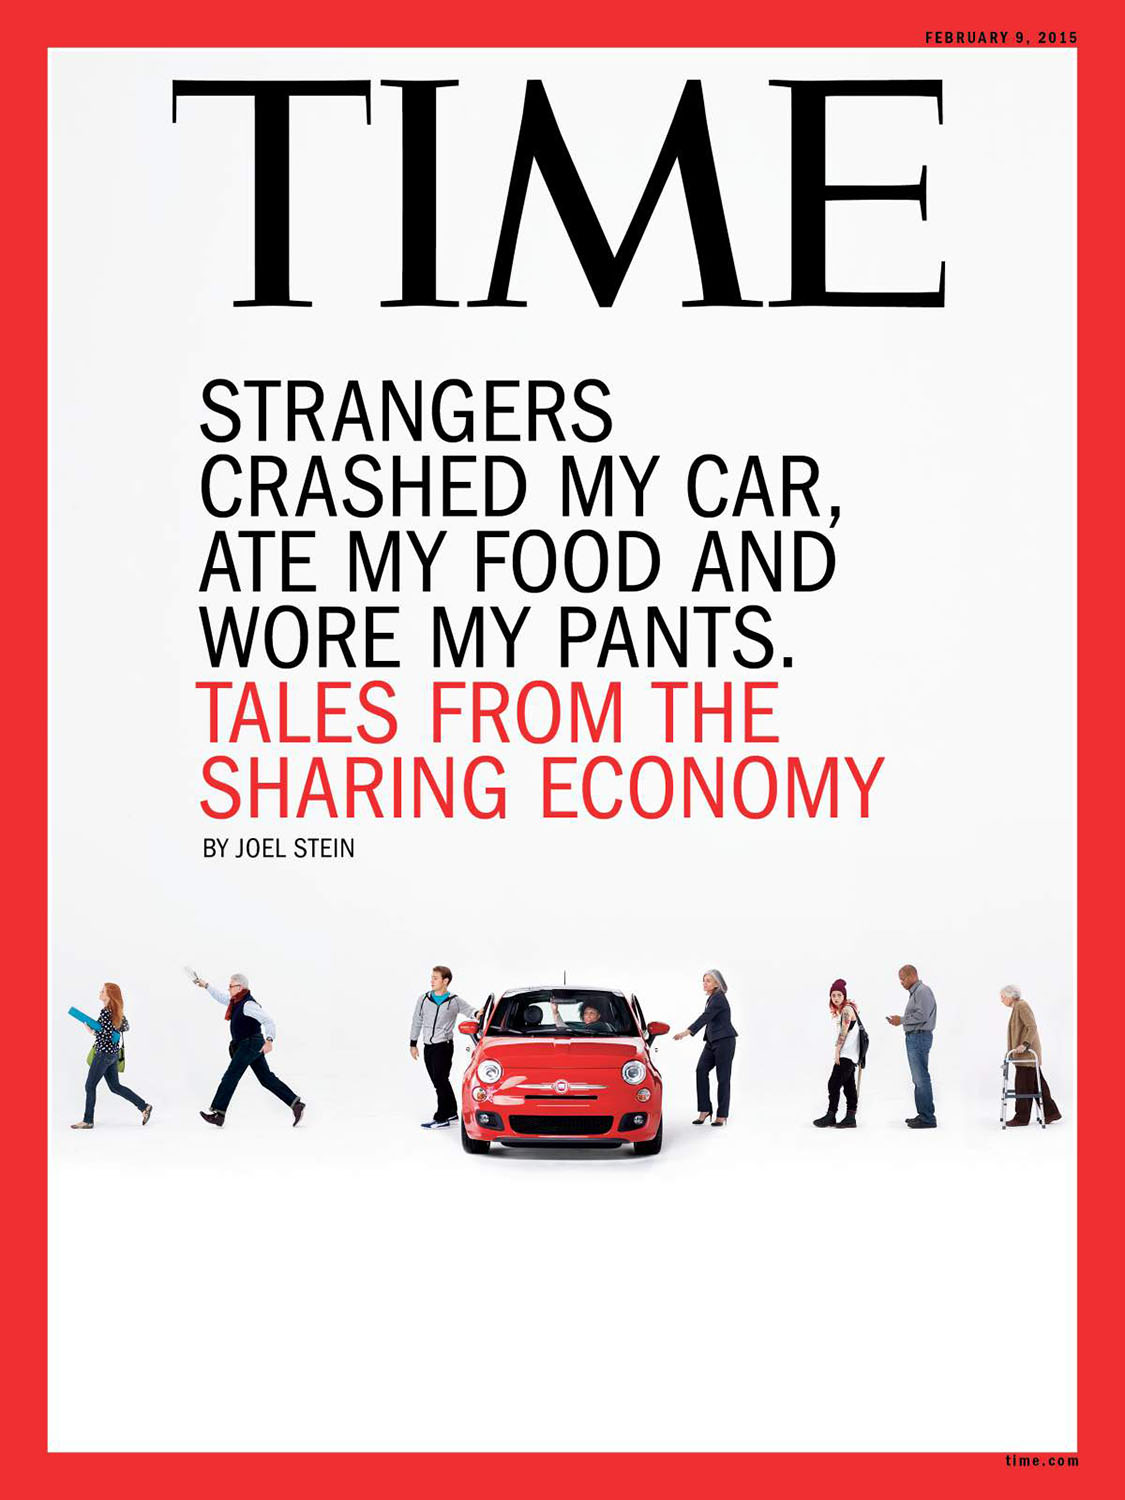 Time Magazine cover shot in Studio 2 by Chris Buck.